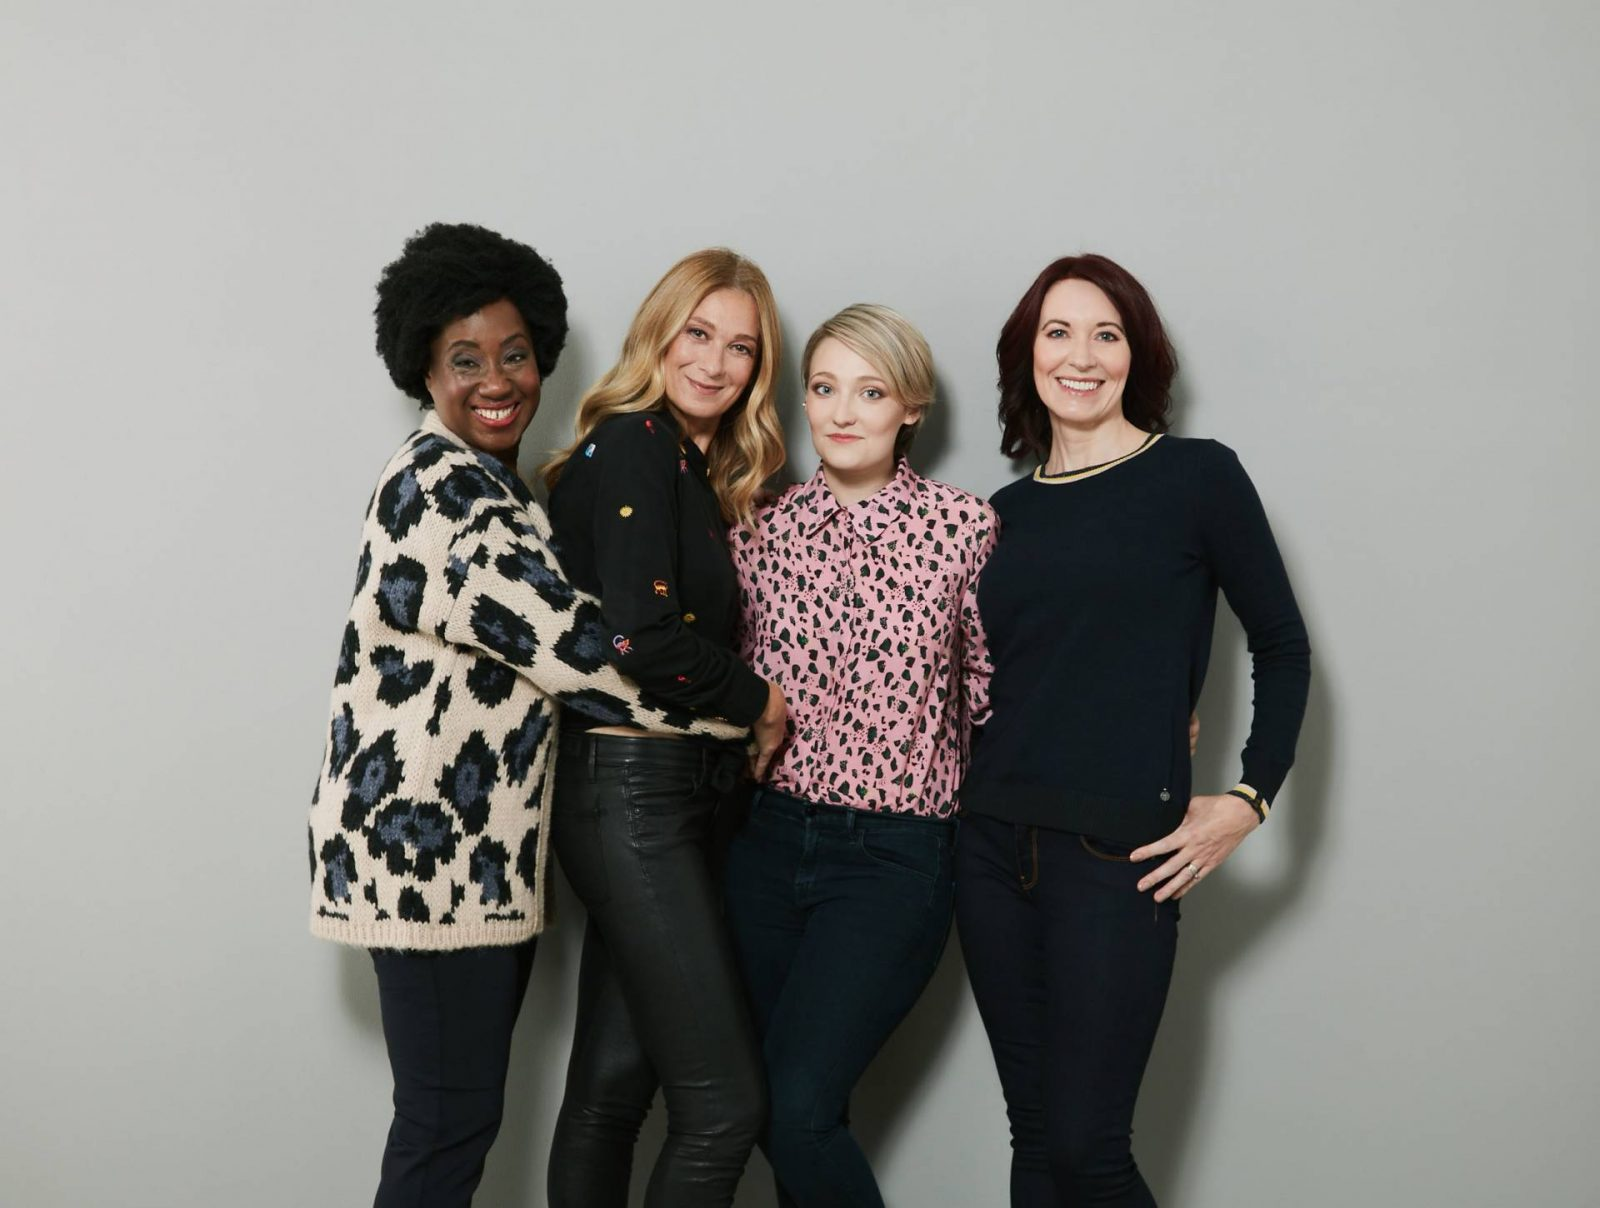 Modelling for the-Bias-Cut.com, group shot